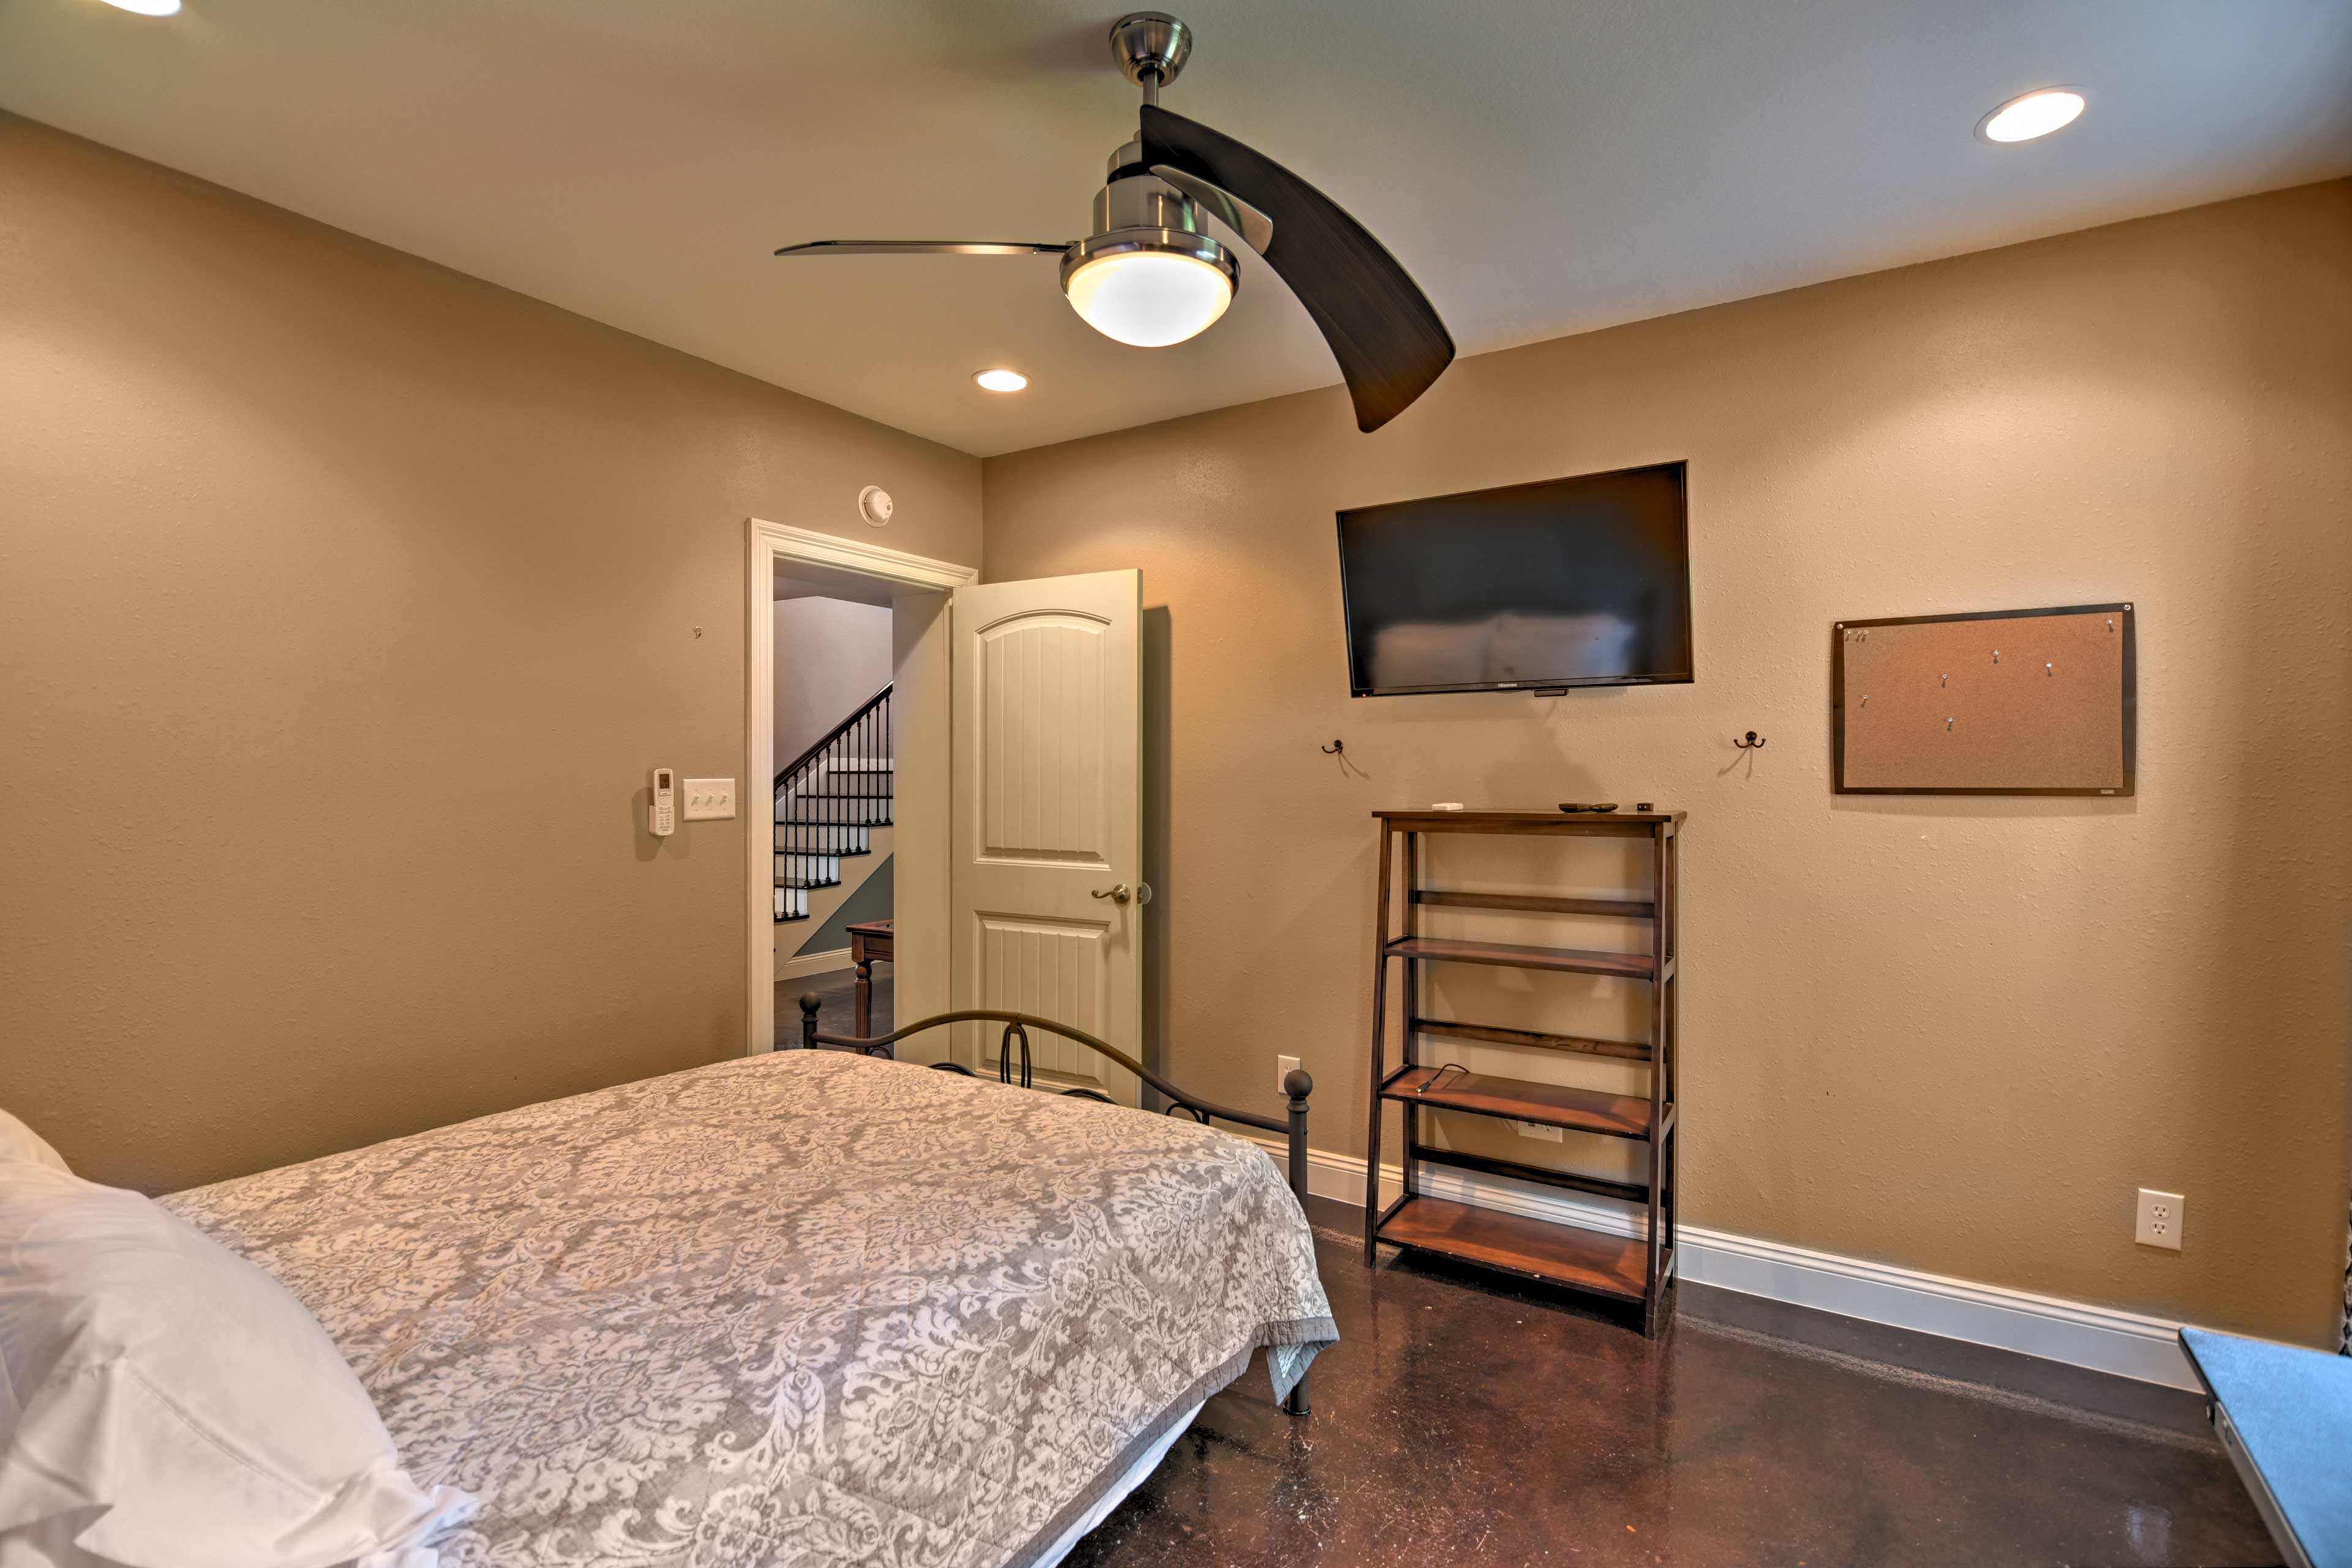 A ceiling fan and ductless mini-split AC keep you cool at night.